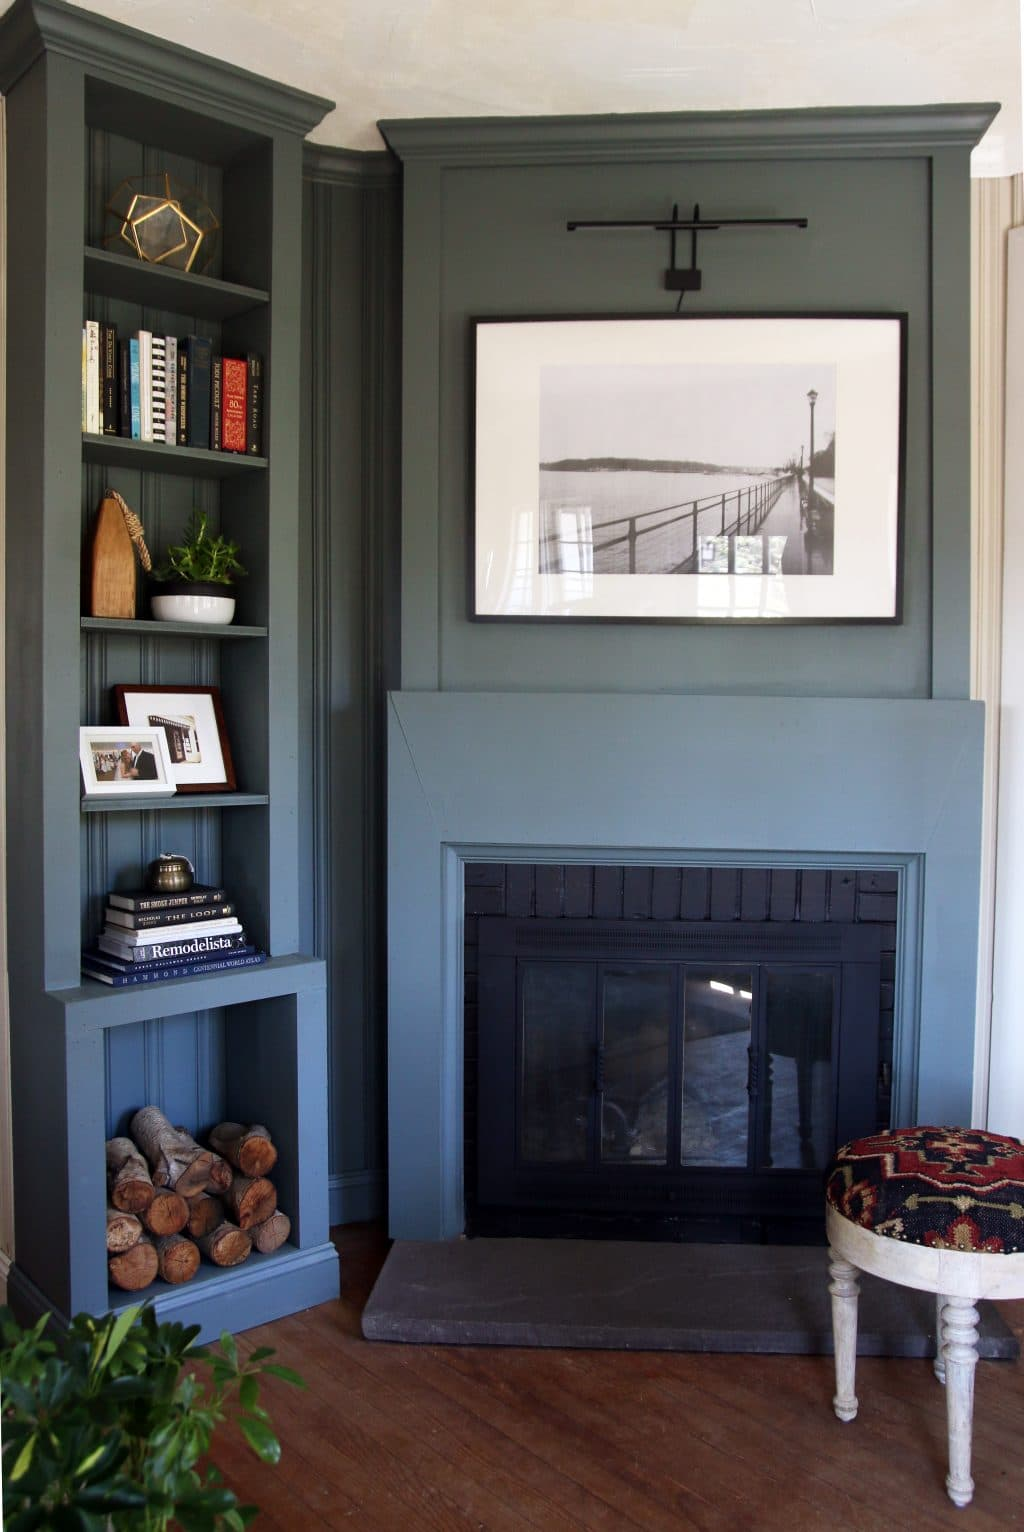 Wood Fireplace Inserts Lowes Luxury Lowe S Spring Makeover afters A Modern Lake House Entry